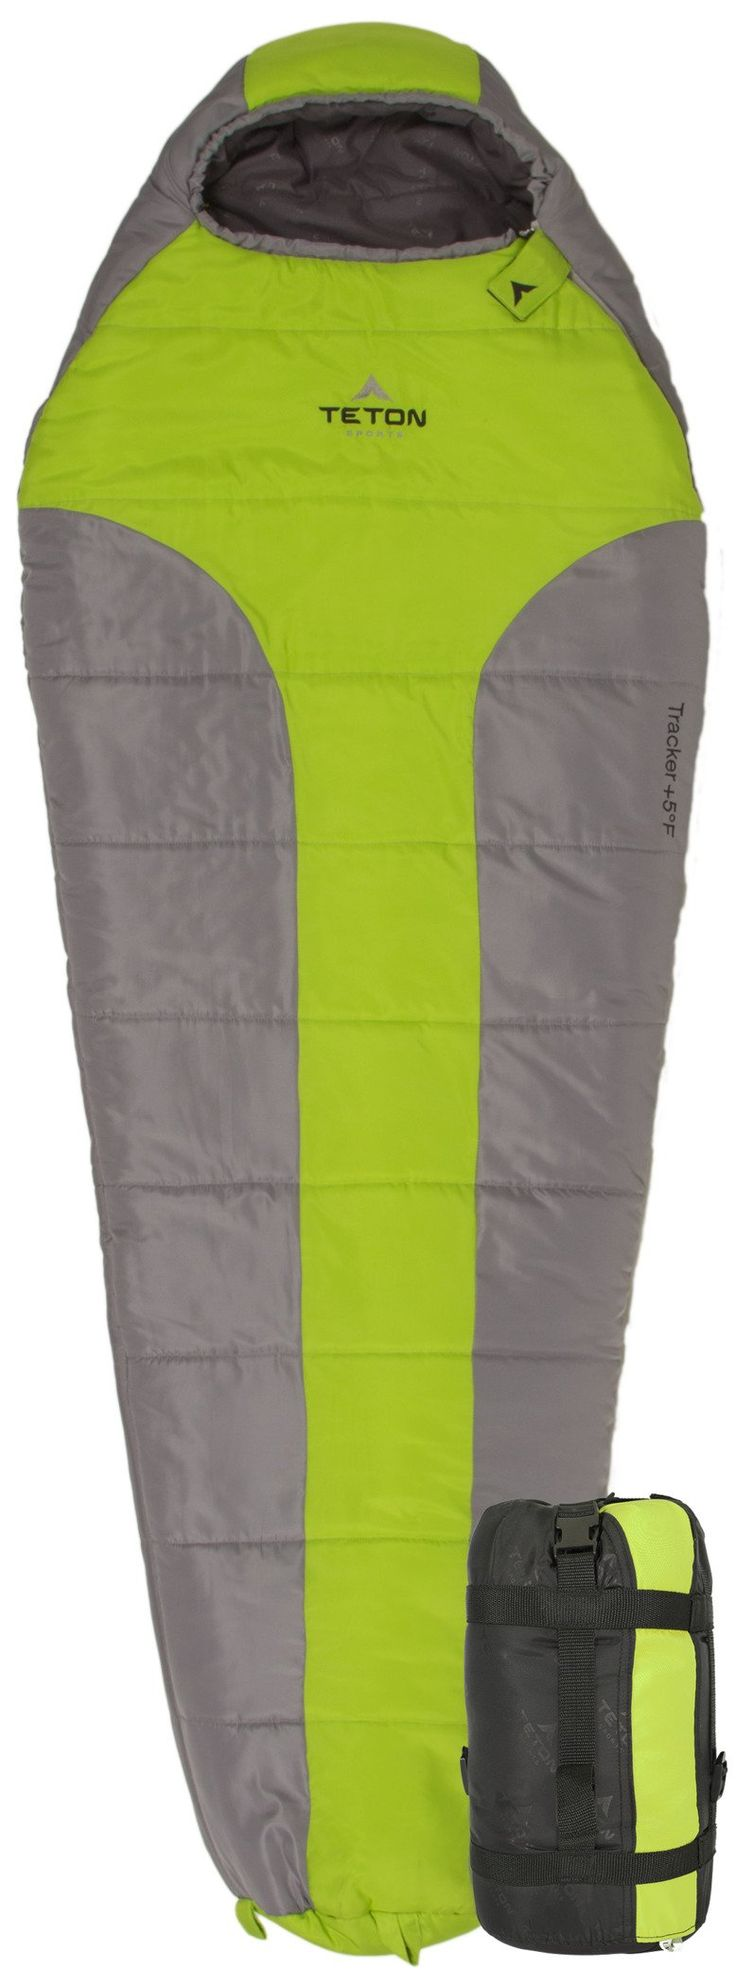 TETON Sports Tracker +5F Ultralight Sleeping Bag Perfect for Backpacking, Hiking, and Camping; Green/Grey. ULTRALIGHT AND ULTRAWARM: With body-mapping technology--bag is designed with added insulation where you need it most, primarily your feet; Backpack anywhere--weighs only 4.1 pounds (1.9 kg). EXCEEDS EXPECTATIONS: 3 piece hood contours your face to keep your whole head warm; Vaulted foot box; Anti-snag zipper with a full-length zipper draft tube eliminates any cold spots. LARGER...